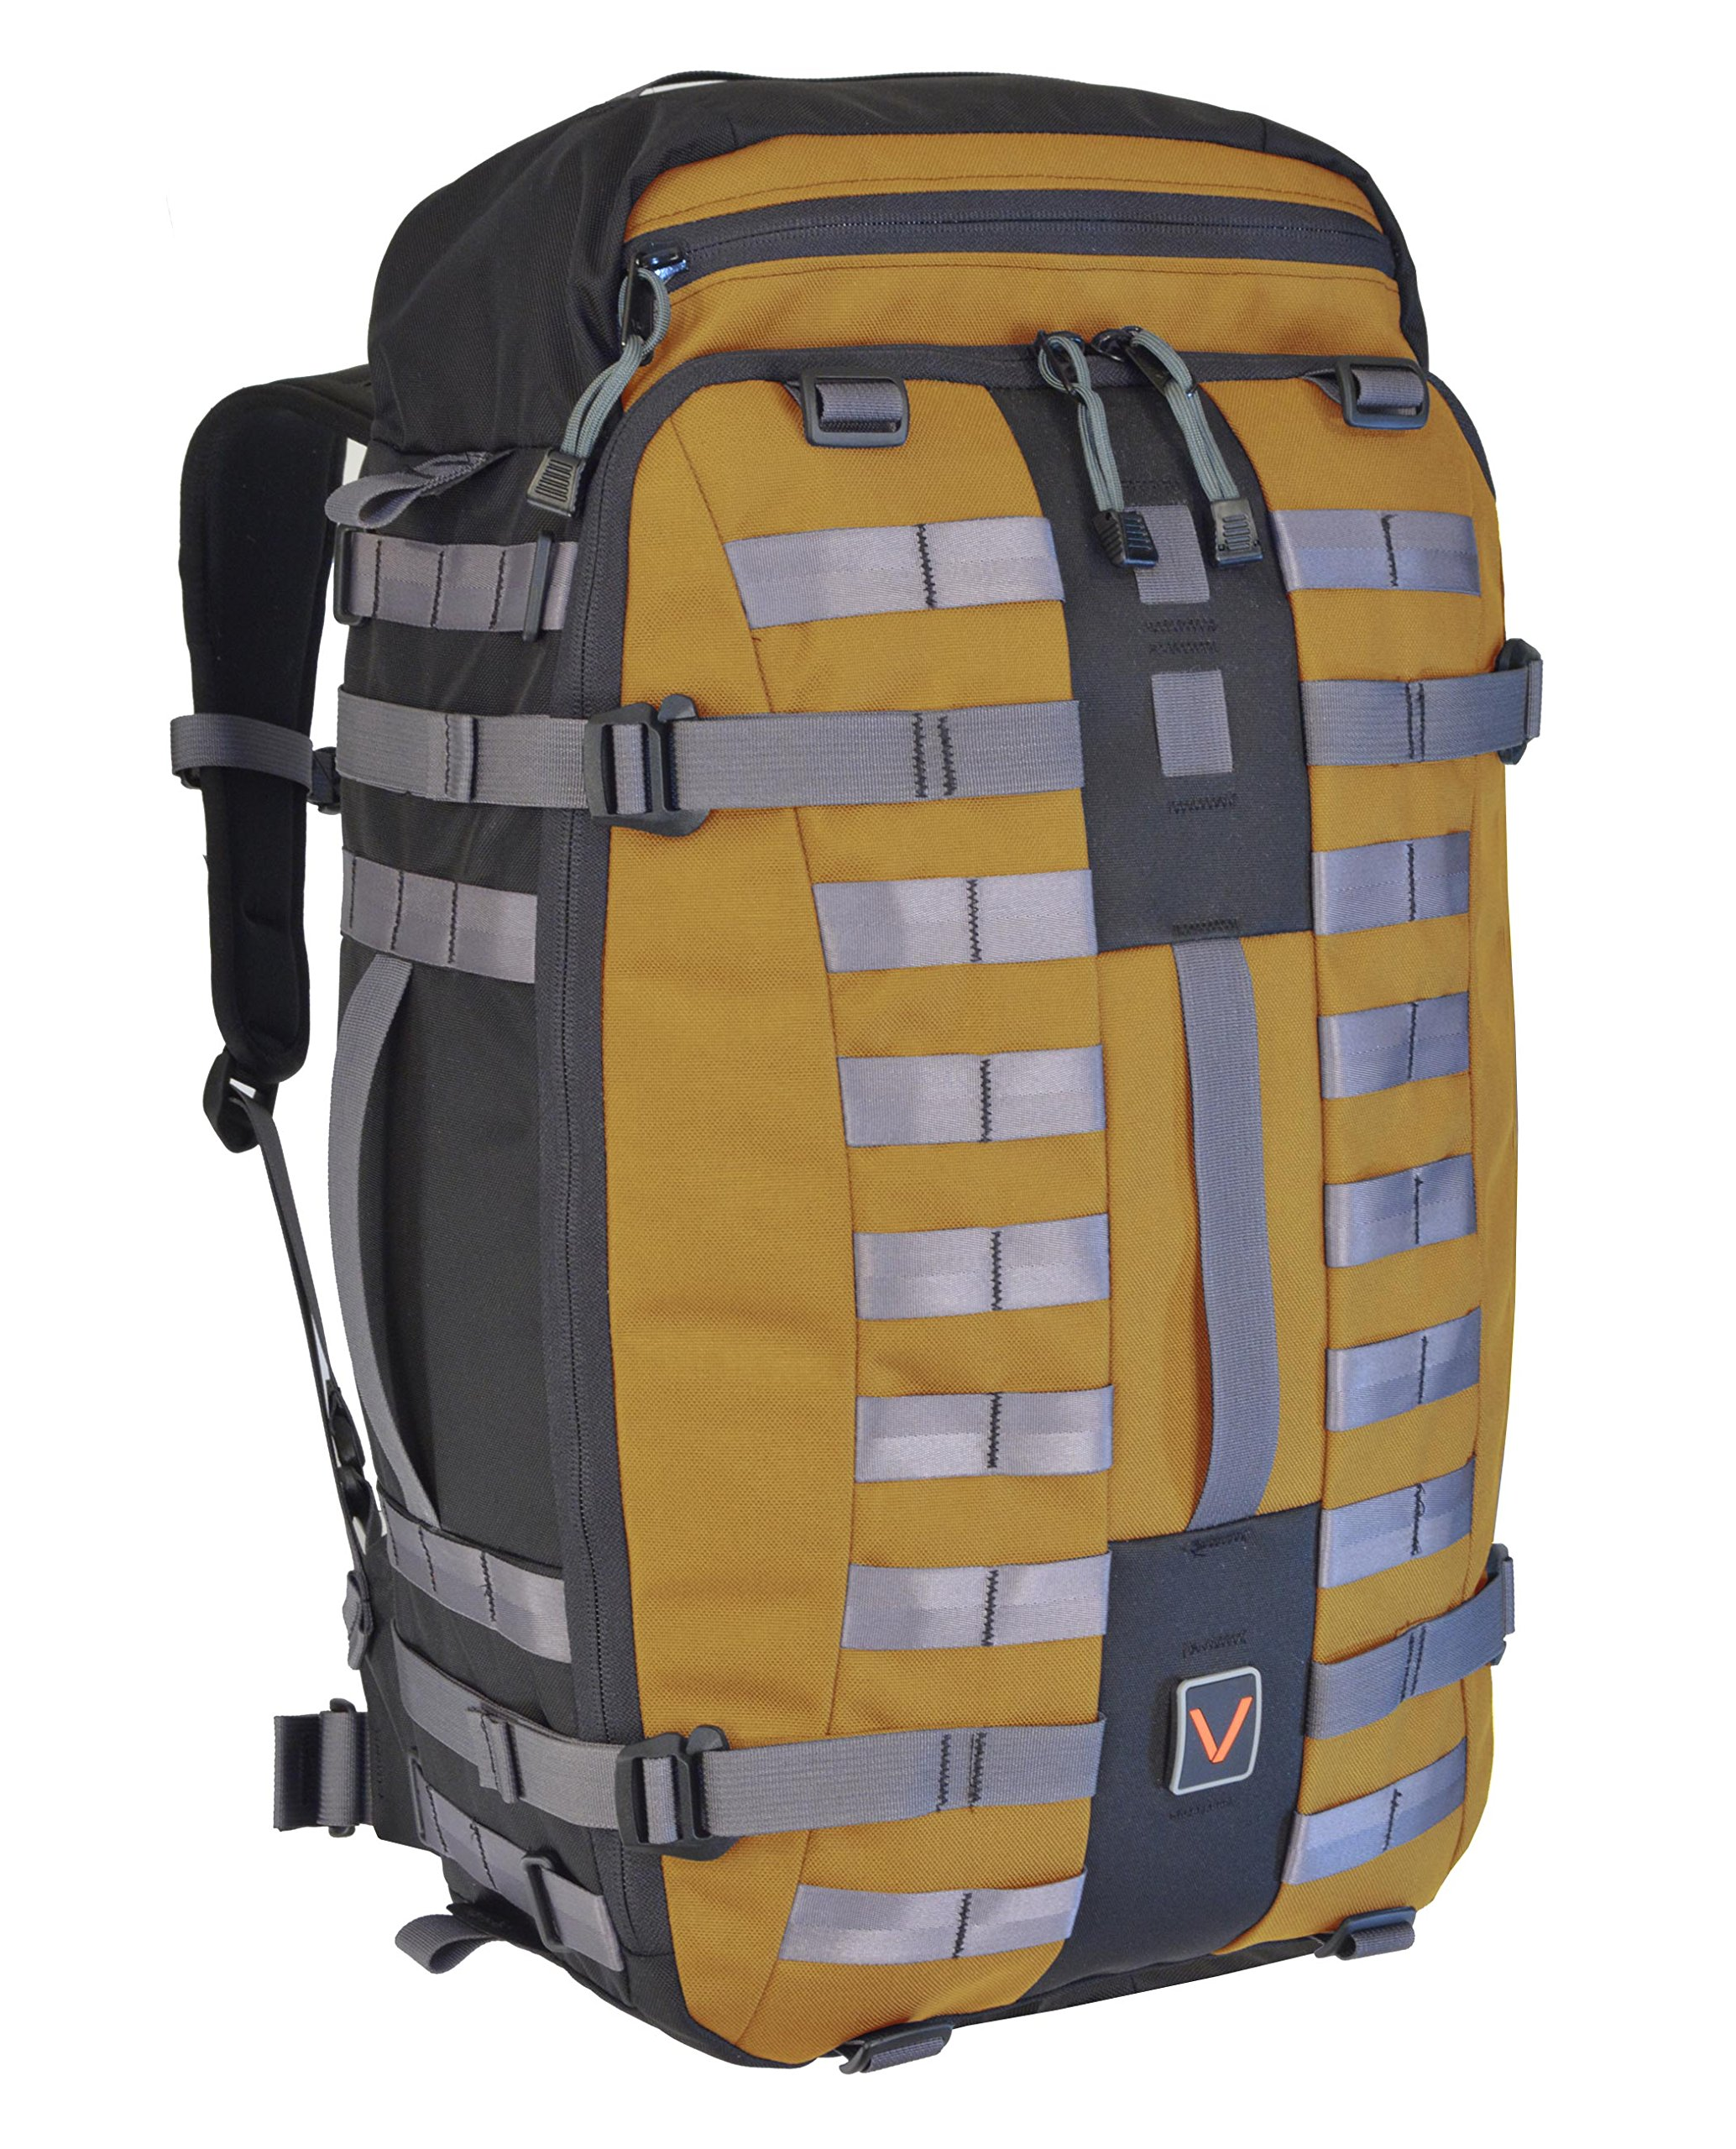 Vital Gear 2017VTGRSAS35WSSND Modular Backpack, Women's Small, Sand by VITAL GEAR